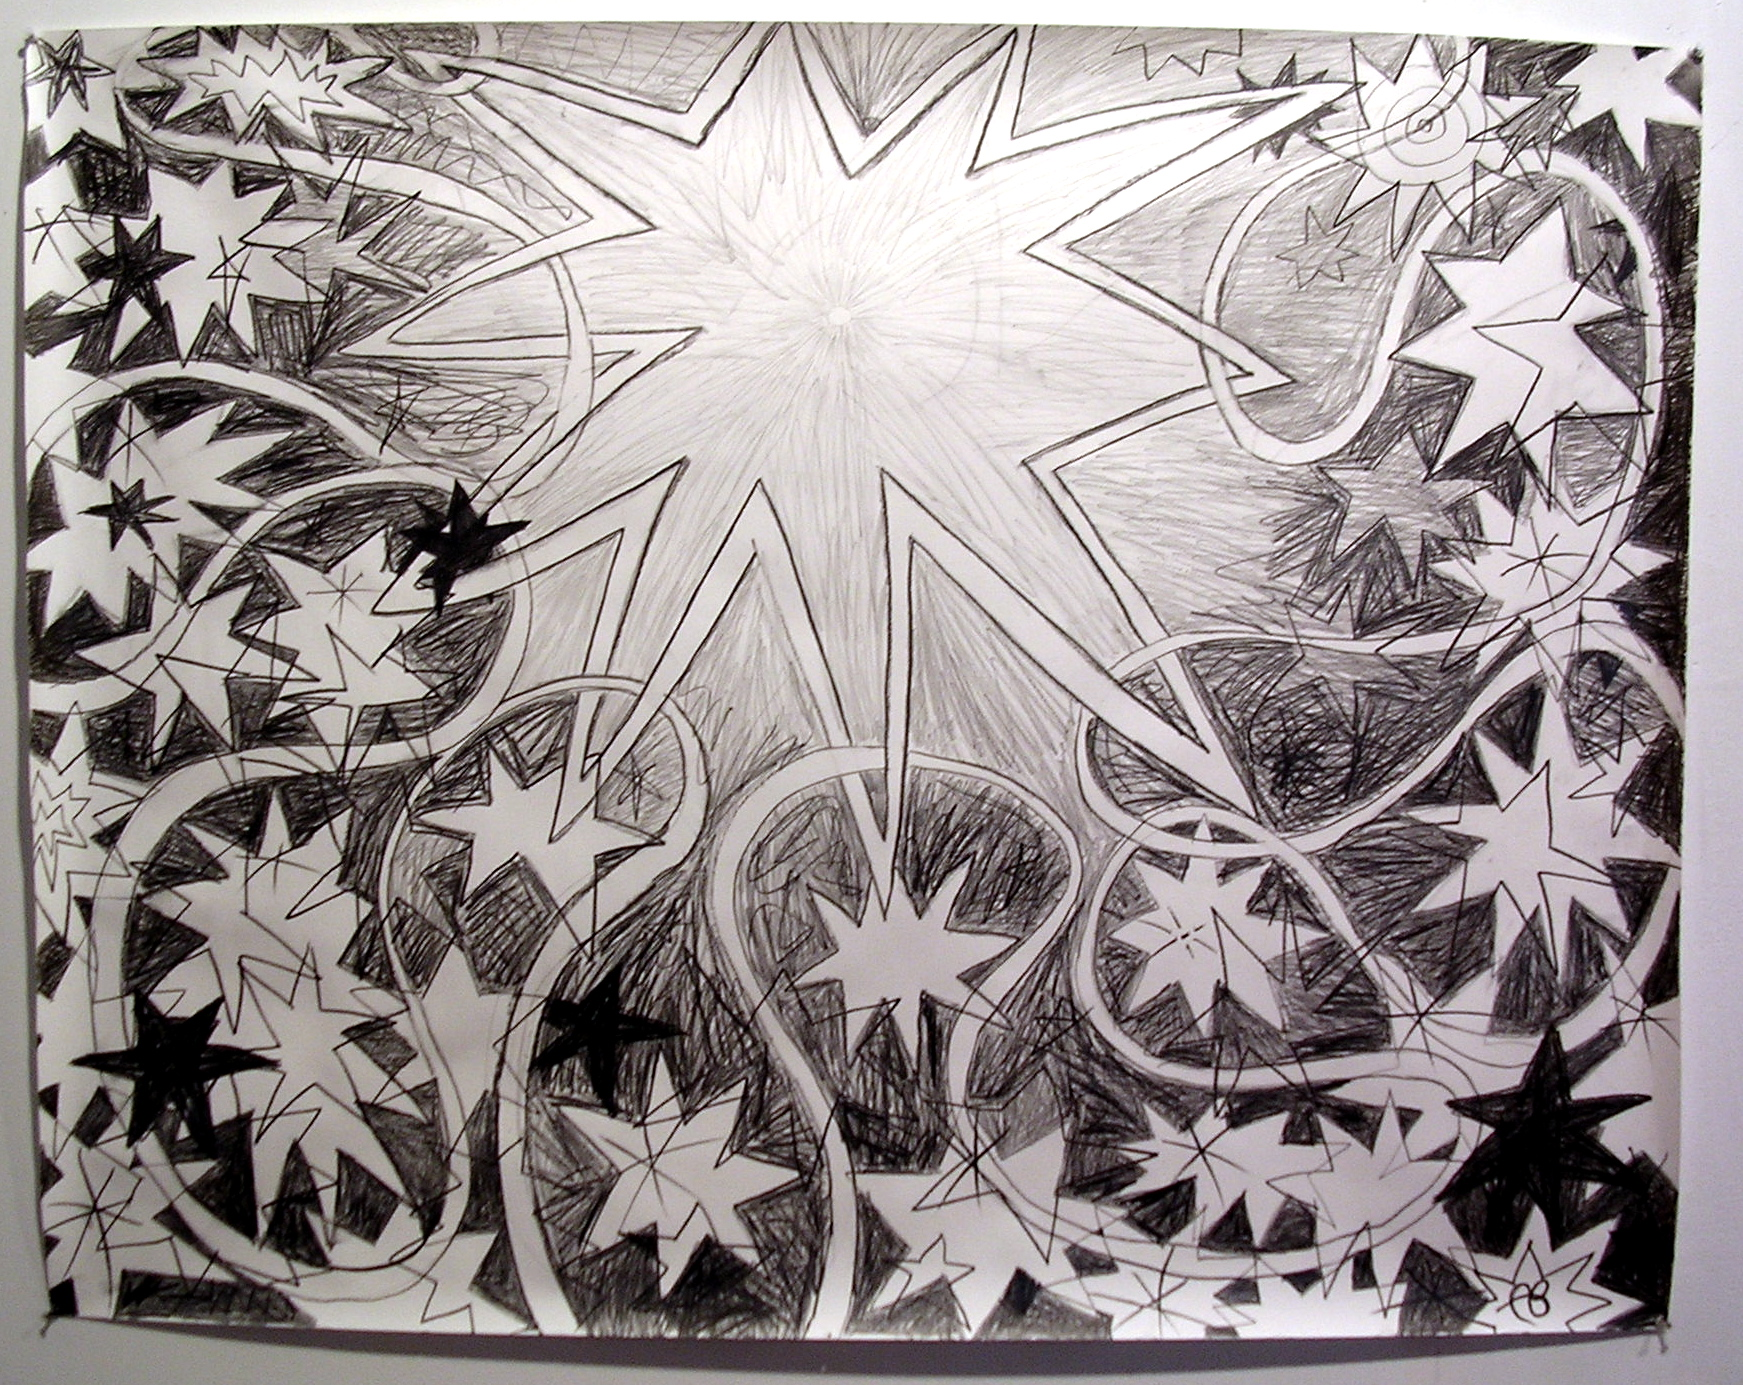 Starburst graphite on paper